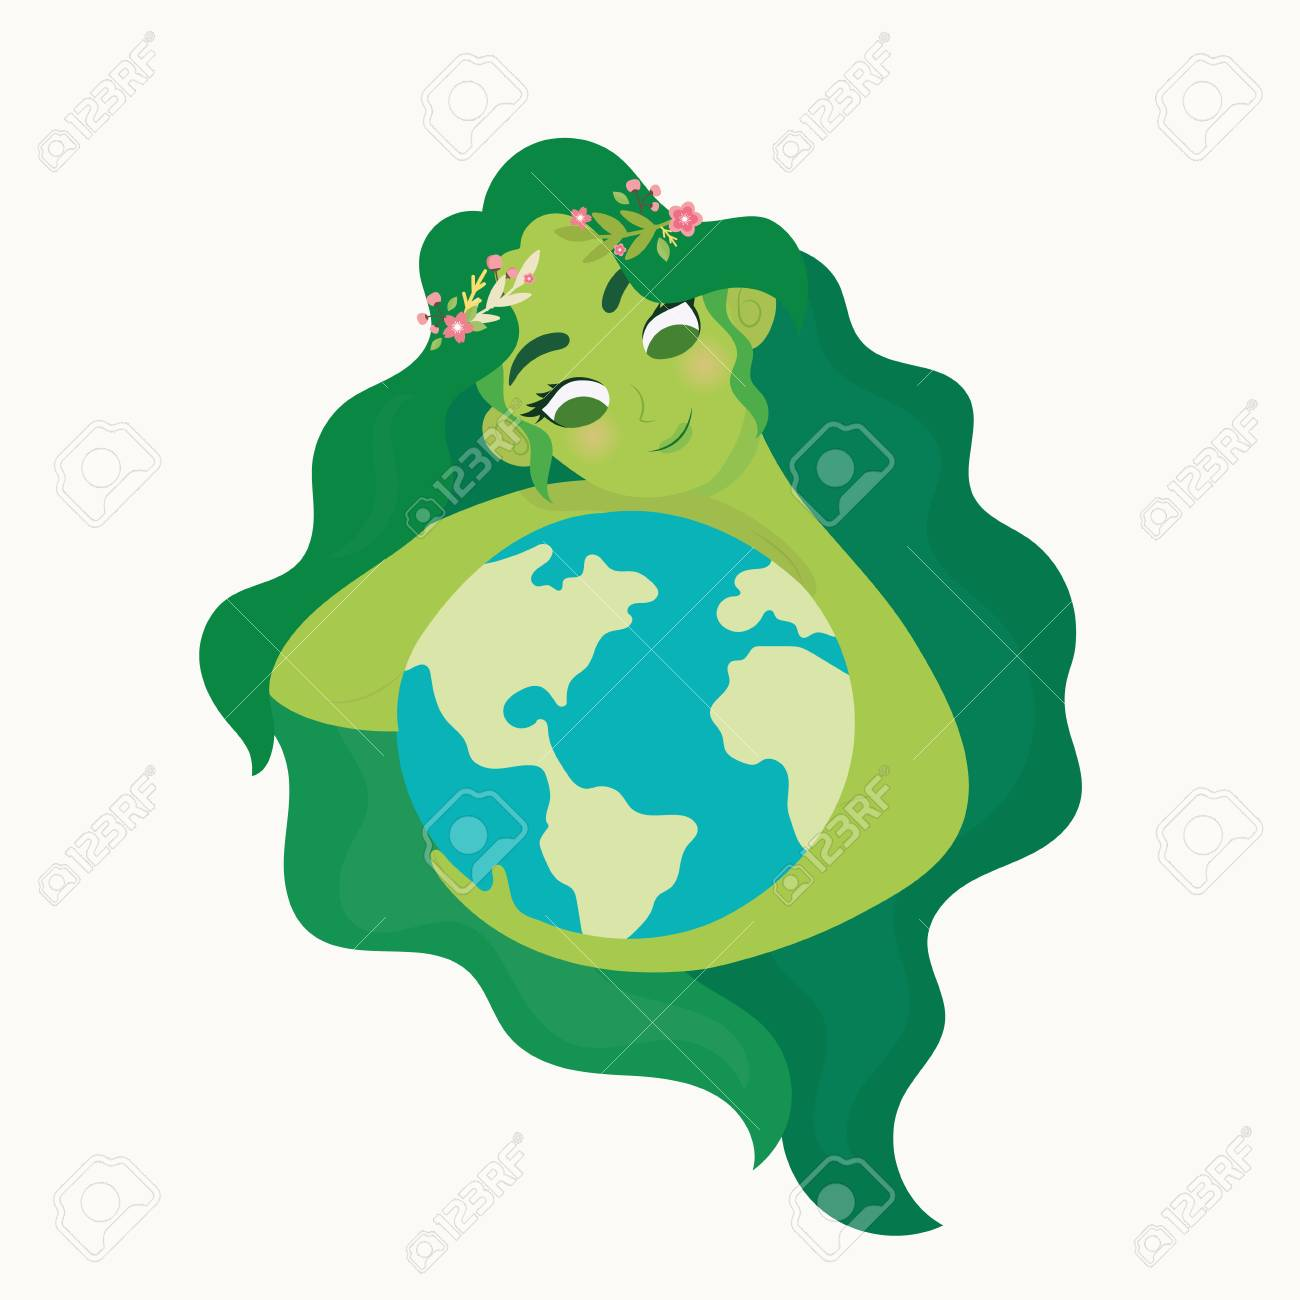 Care For Mother Earth Clipart.